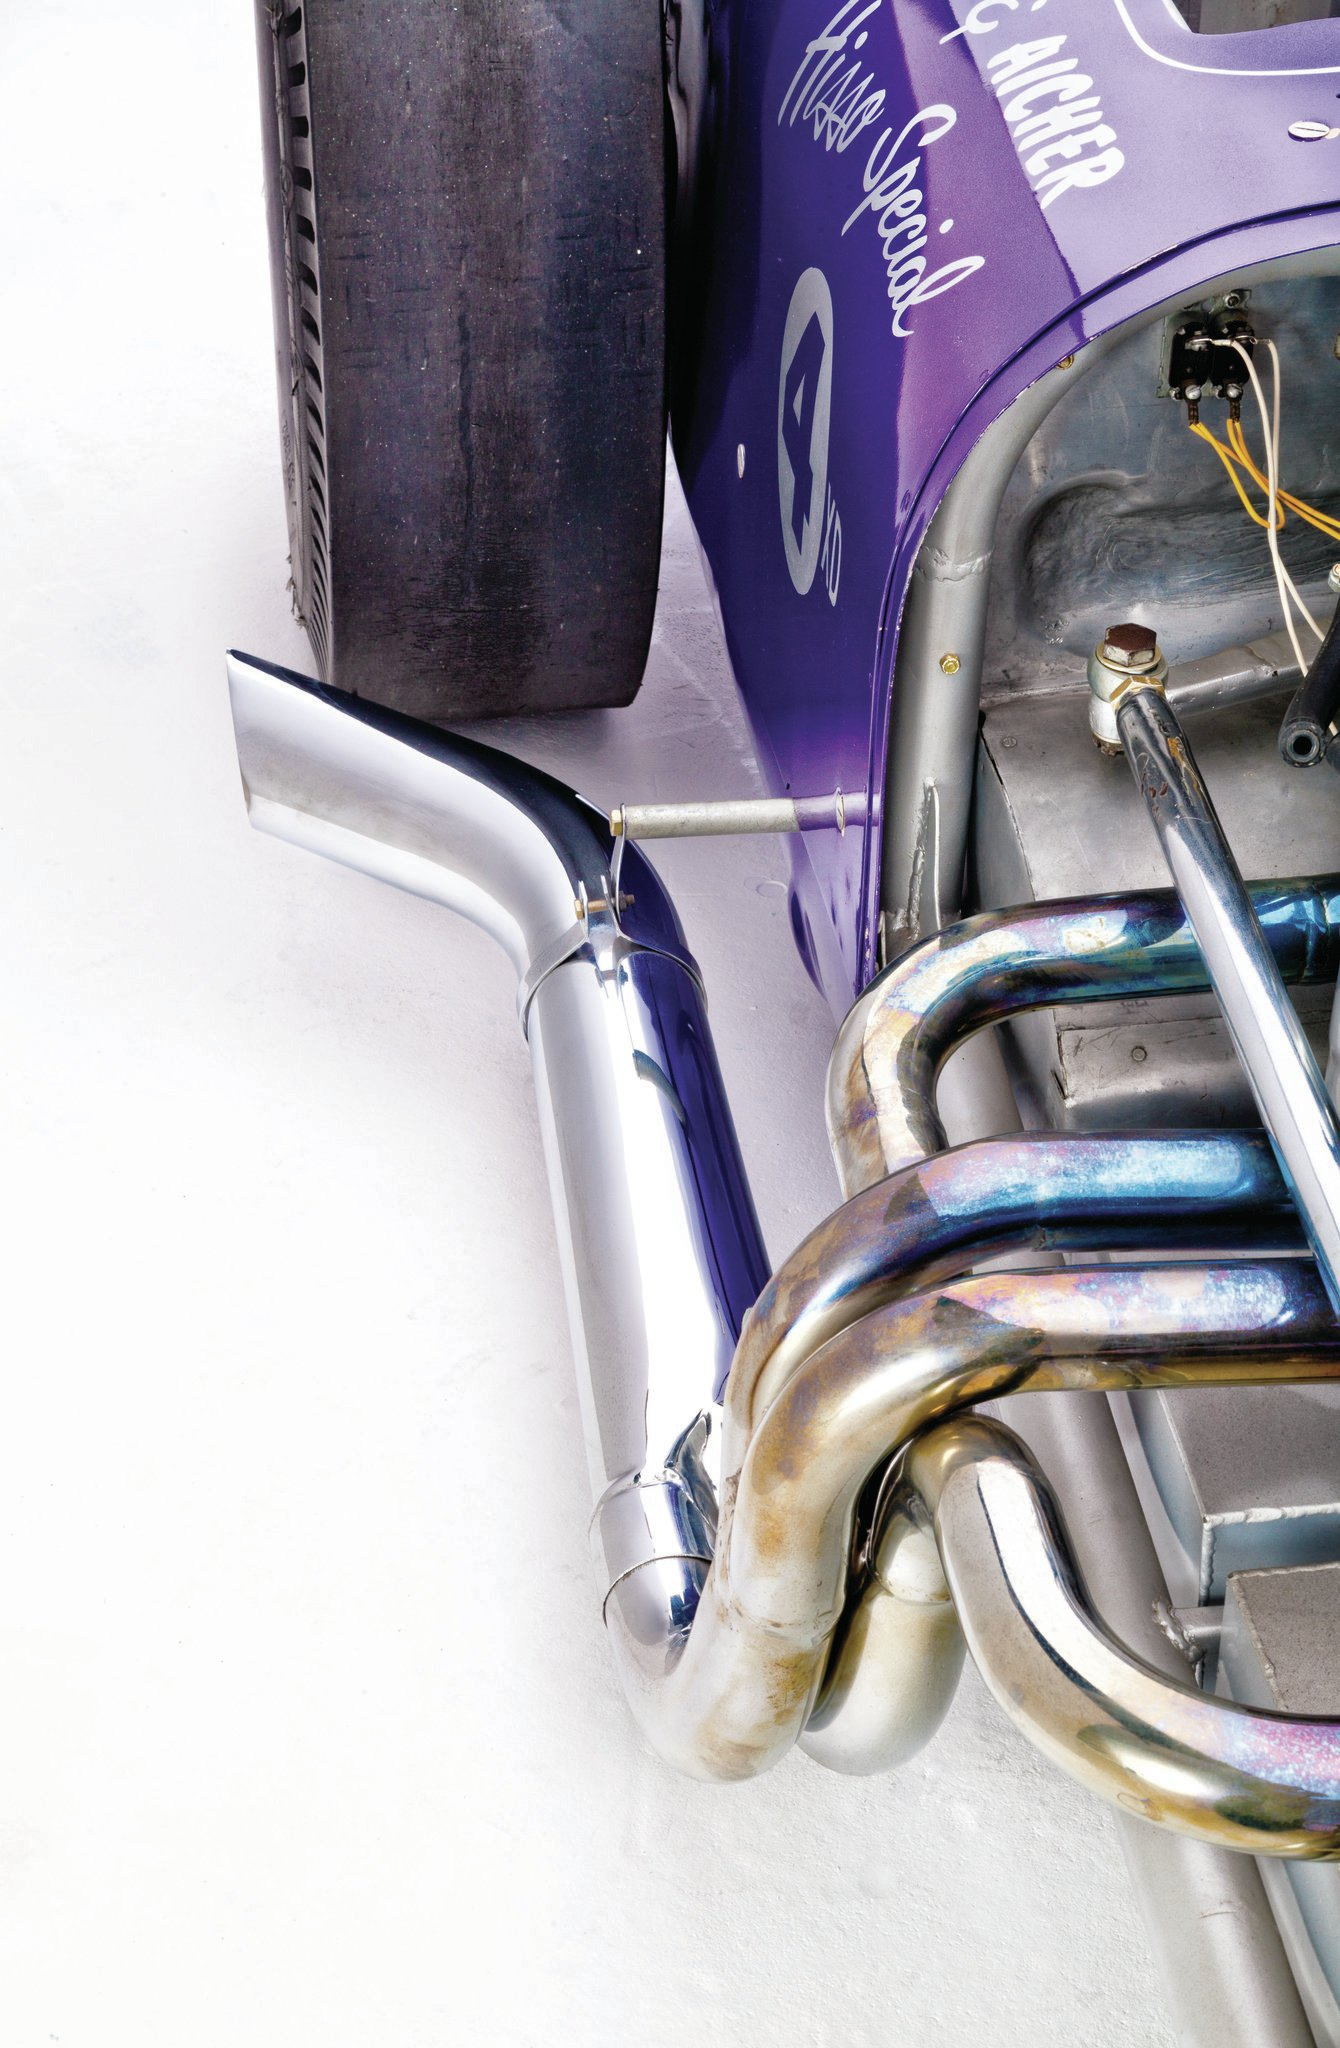 The fuel tank sits under the four-into-one header on the right side of the car.